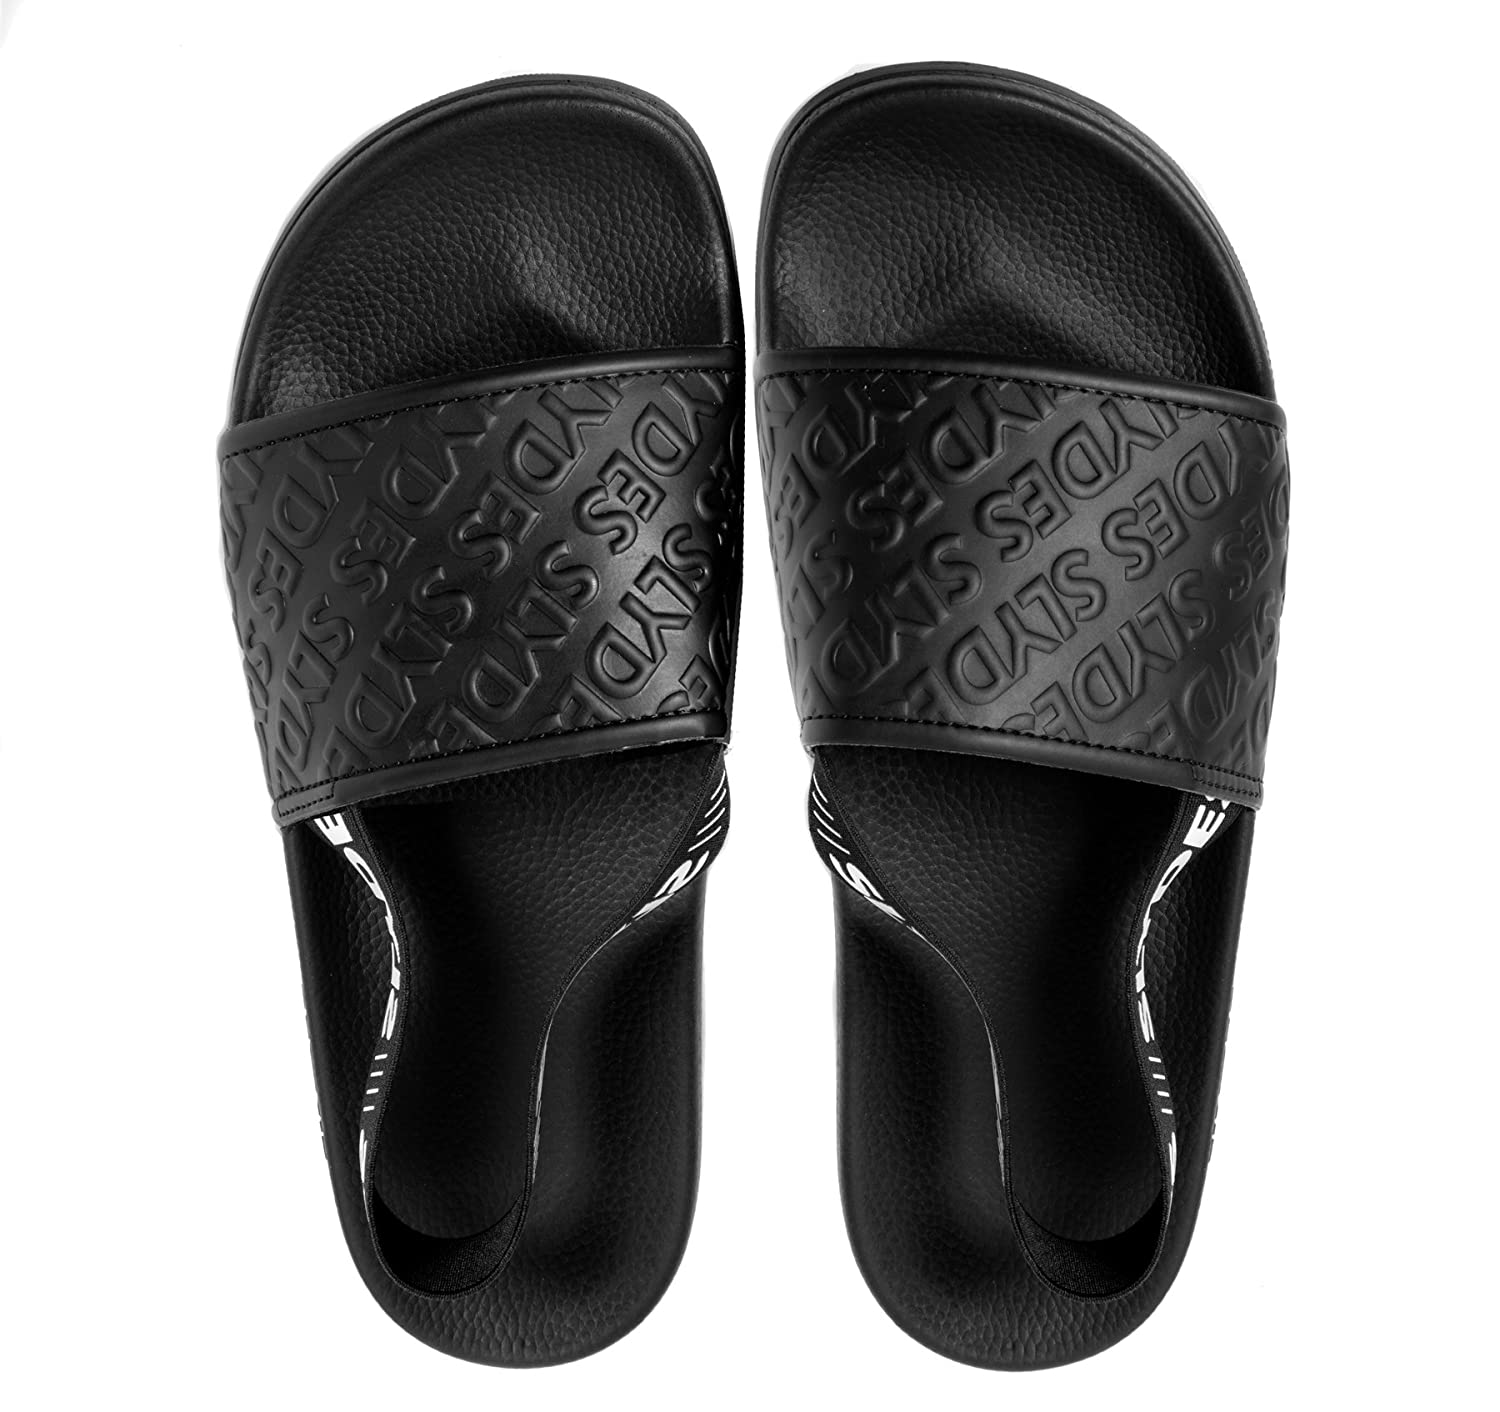 Slydes Roamer Black Men's Slider Sandals B079M62WRJ 8 D(M) US